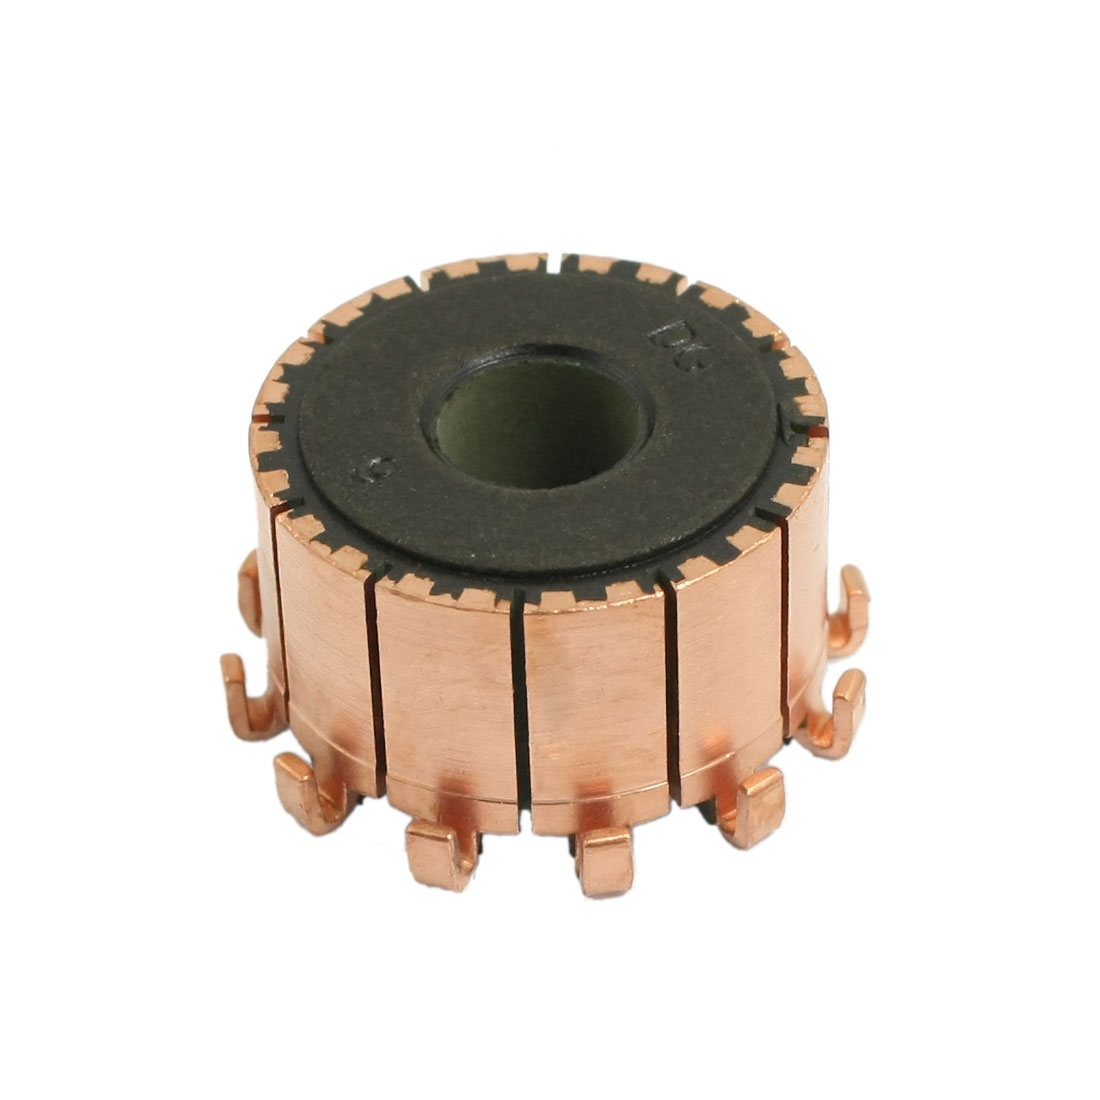 8mm x 23.2mm x 14.5mm 12 Gear Tooth Copper Shell Mounted On Armature Commutator